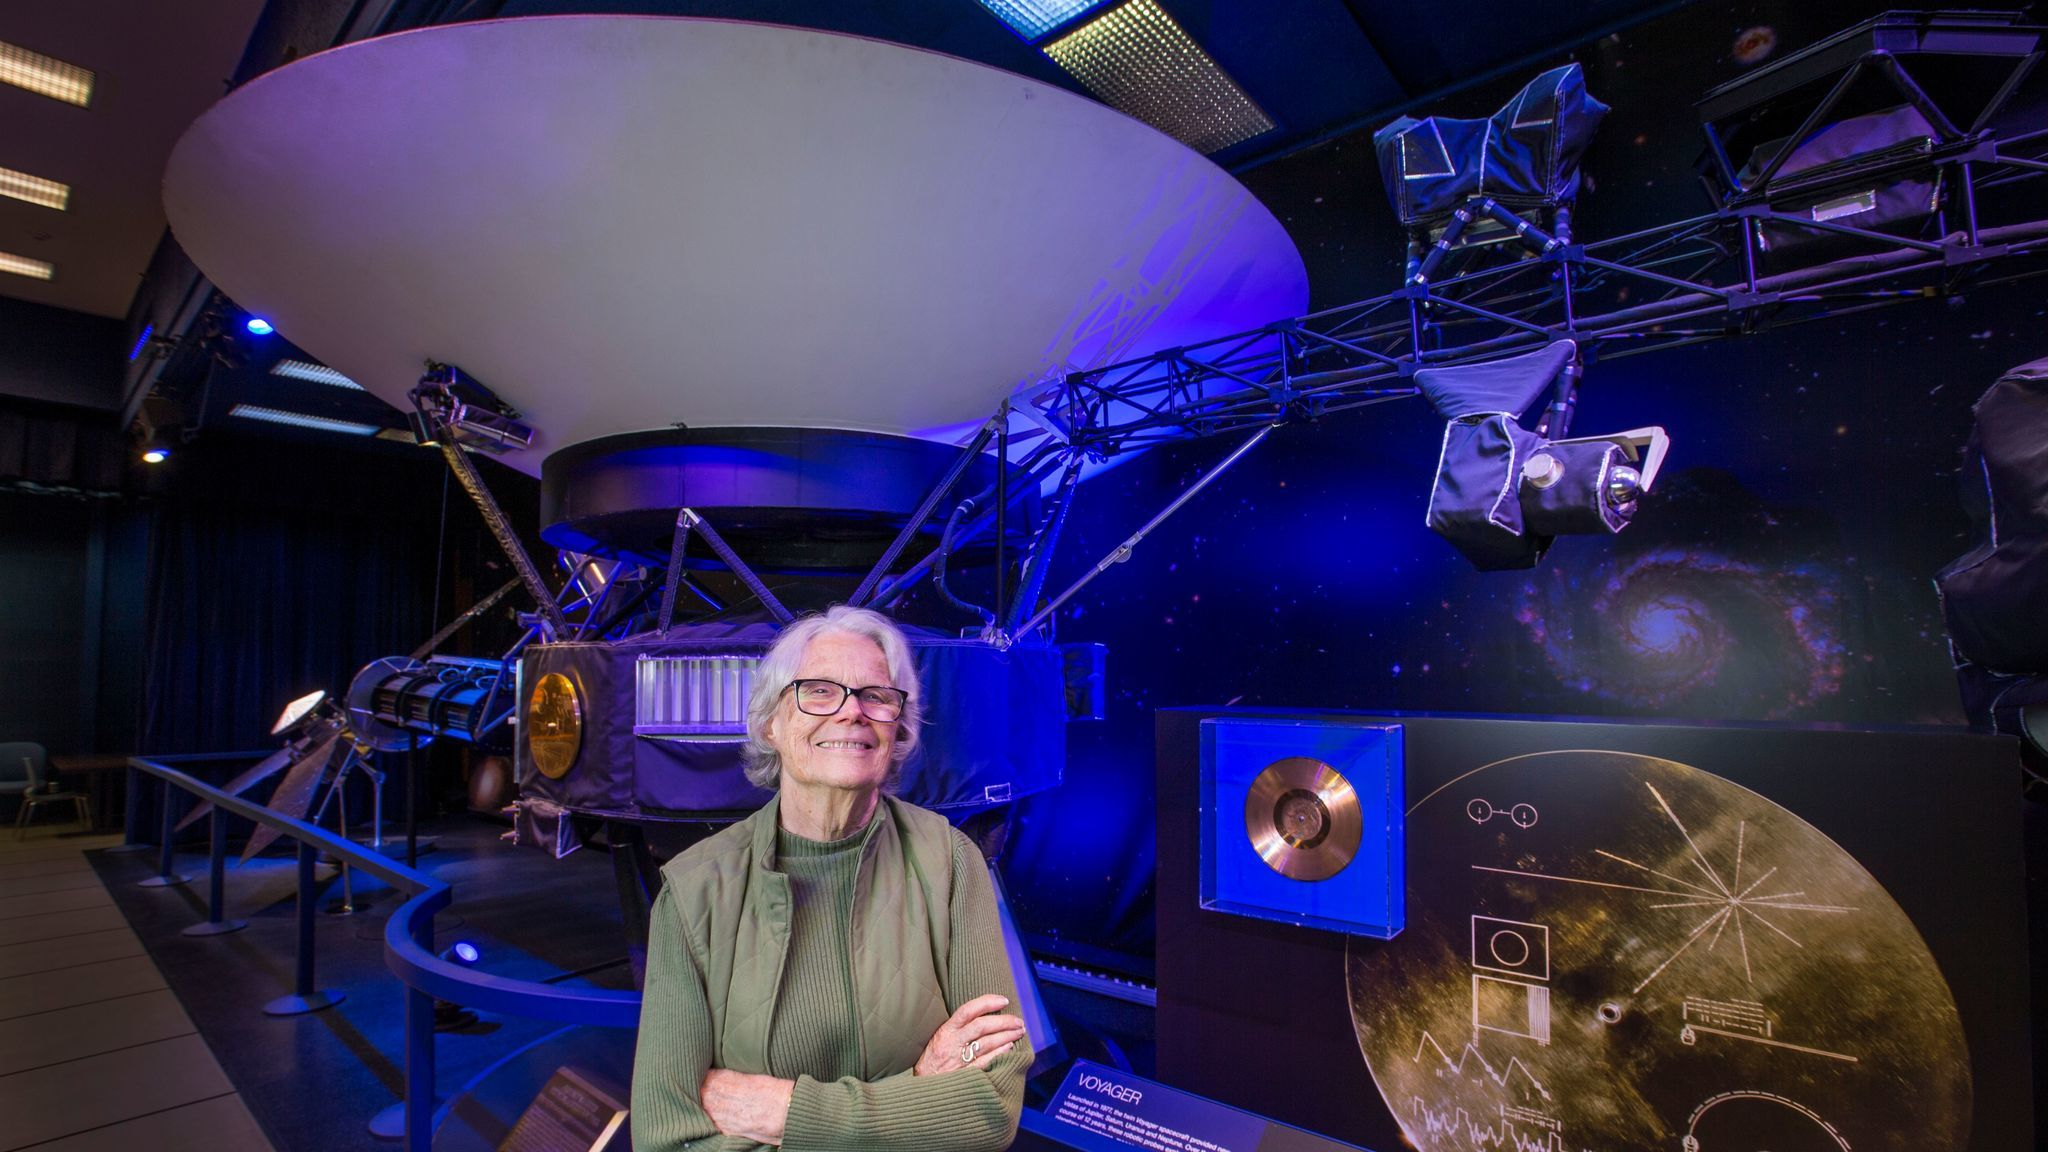 Finley, 80, shown next to a model of the Voyager 1 space probe. She worked on Voyager in the 1970s.